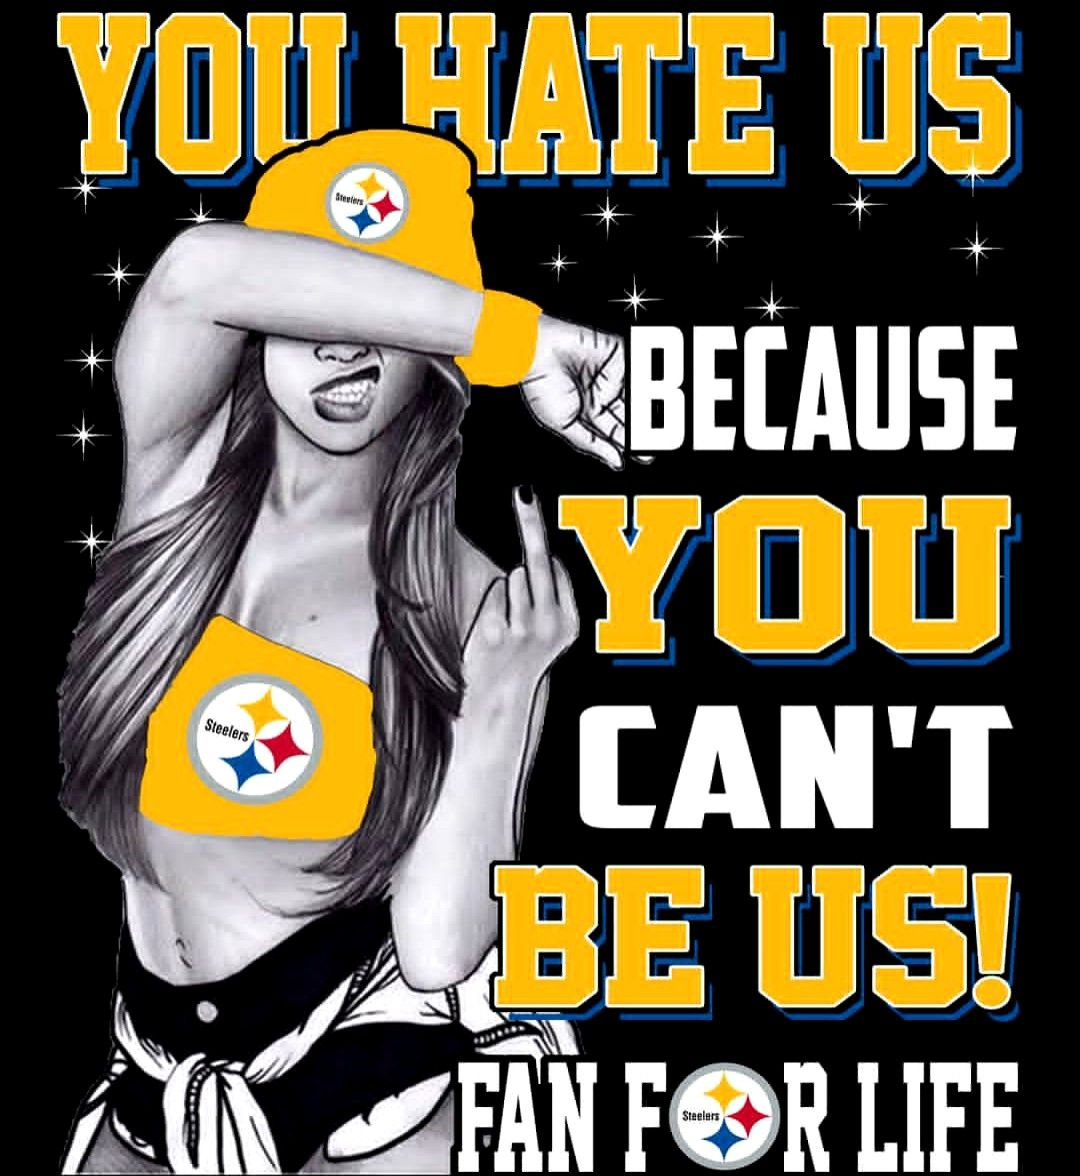 Pin by Pittsburgh Steelers Fanatics on Funny memes Funny